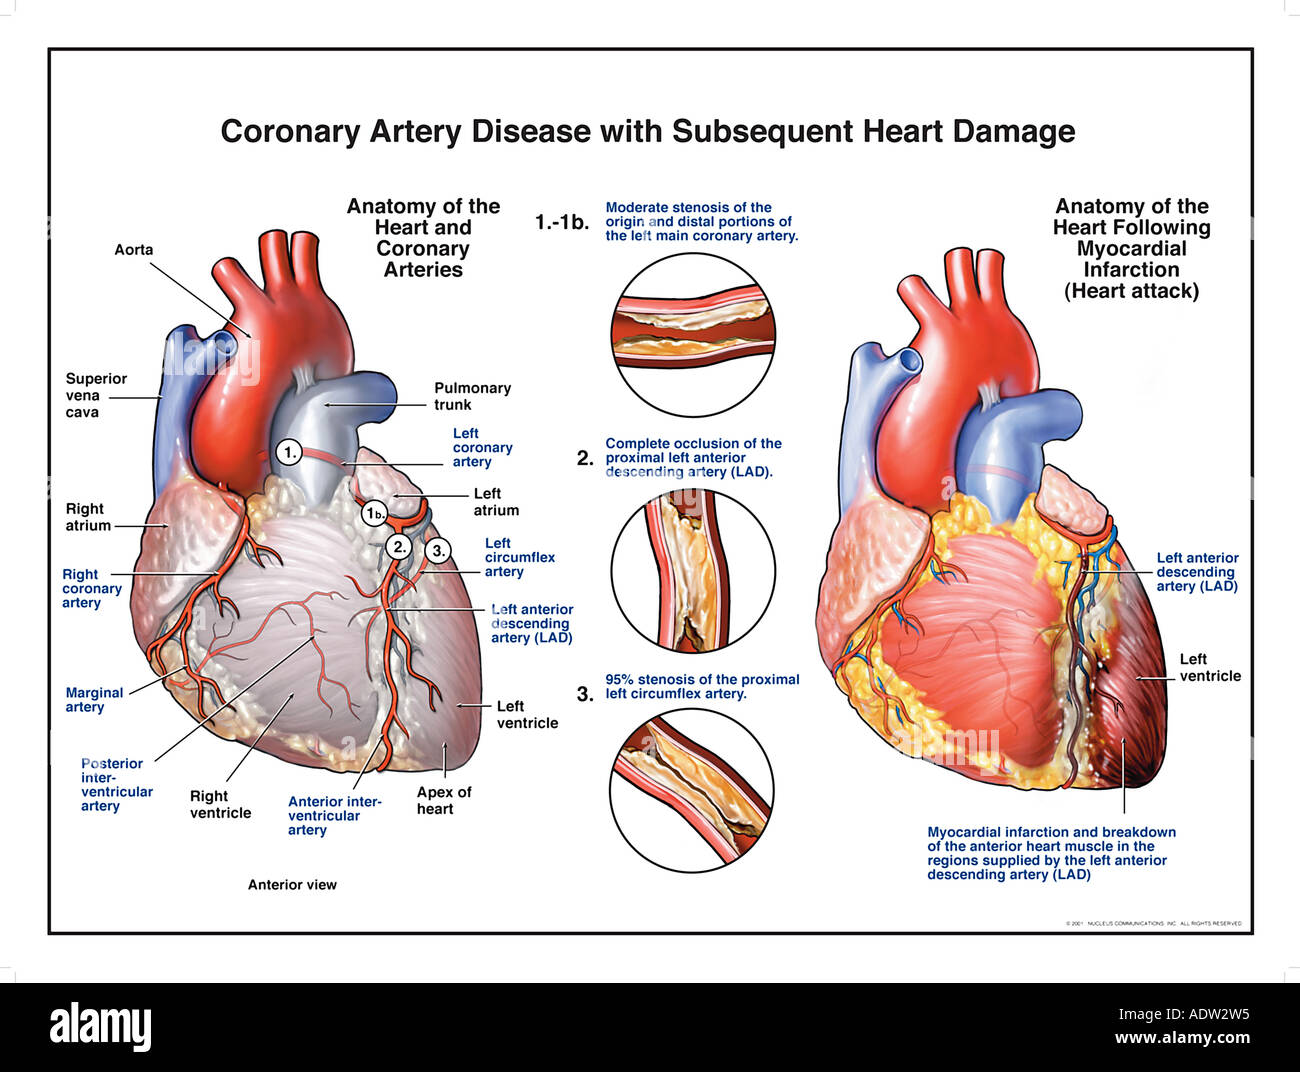 Coronary artery disease with subsequent heart damage stock photo coronary artery disease with subsequent heart damage stock photo ccuart Images